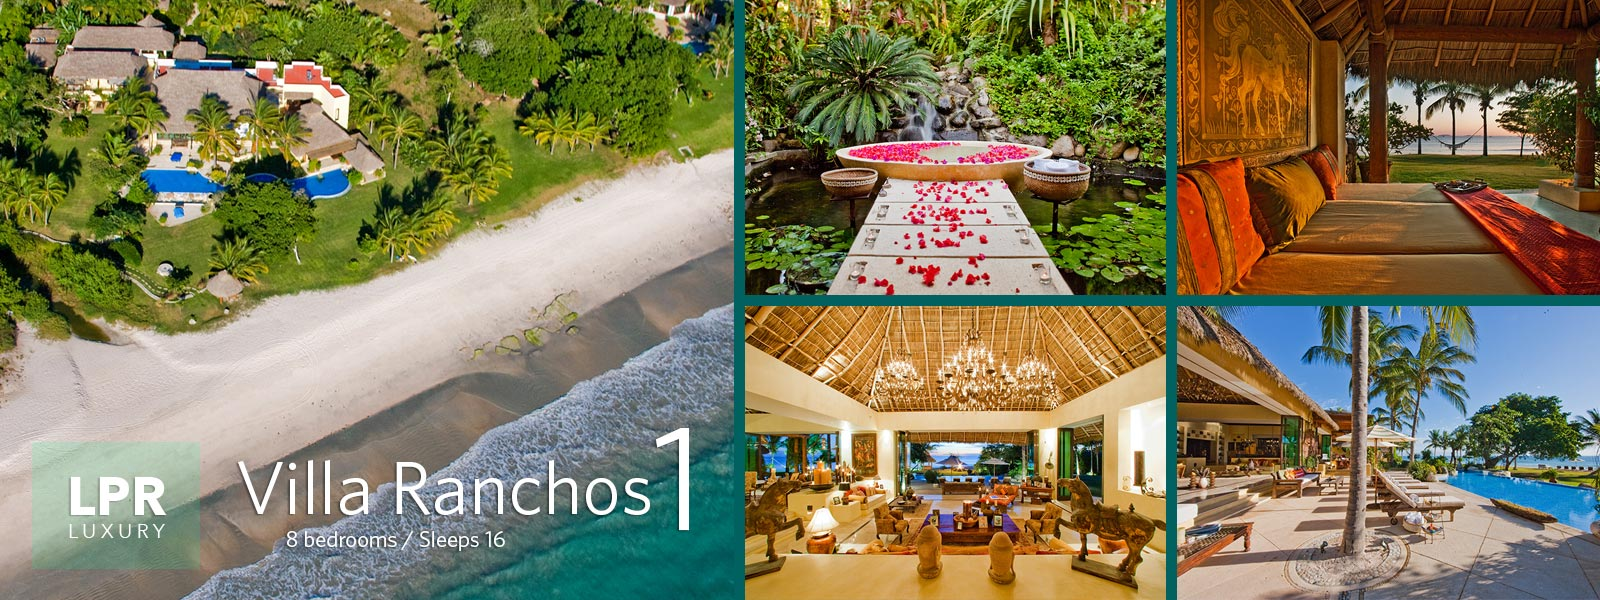 Villa Ranchos 1 - Ultra luxury villa for sale and rent at the Punta Mita Resort - Puerto Vallarta luxury real estate